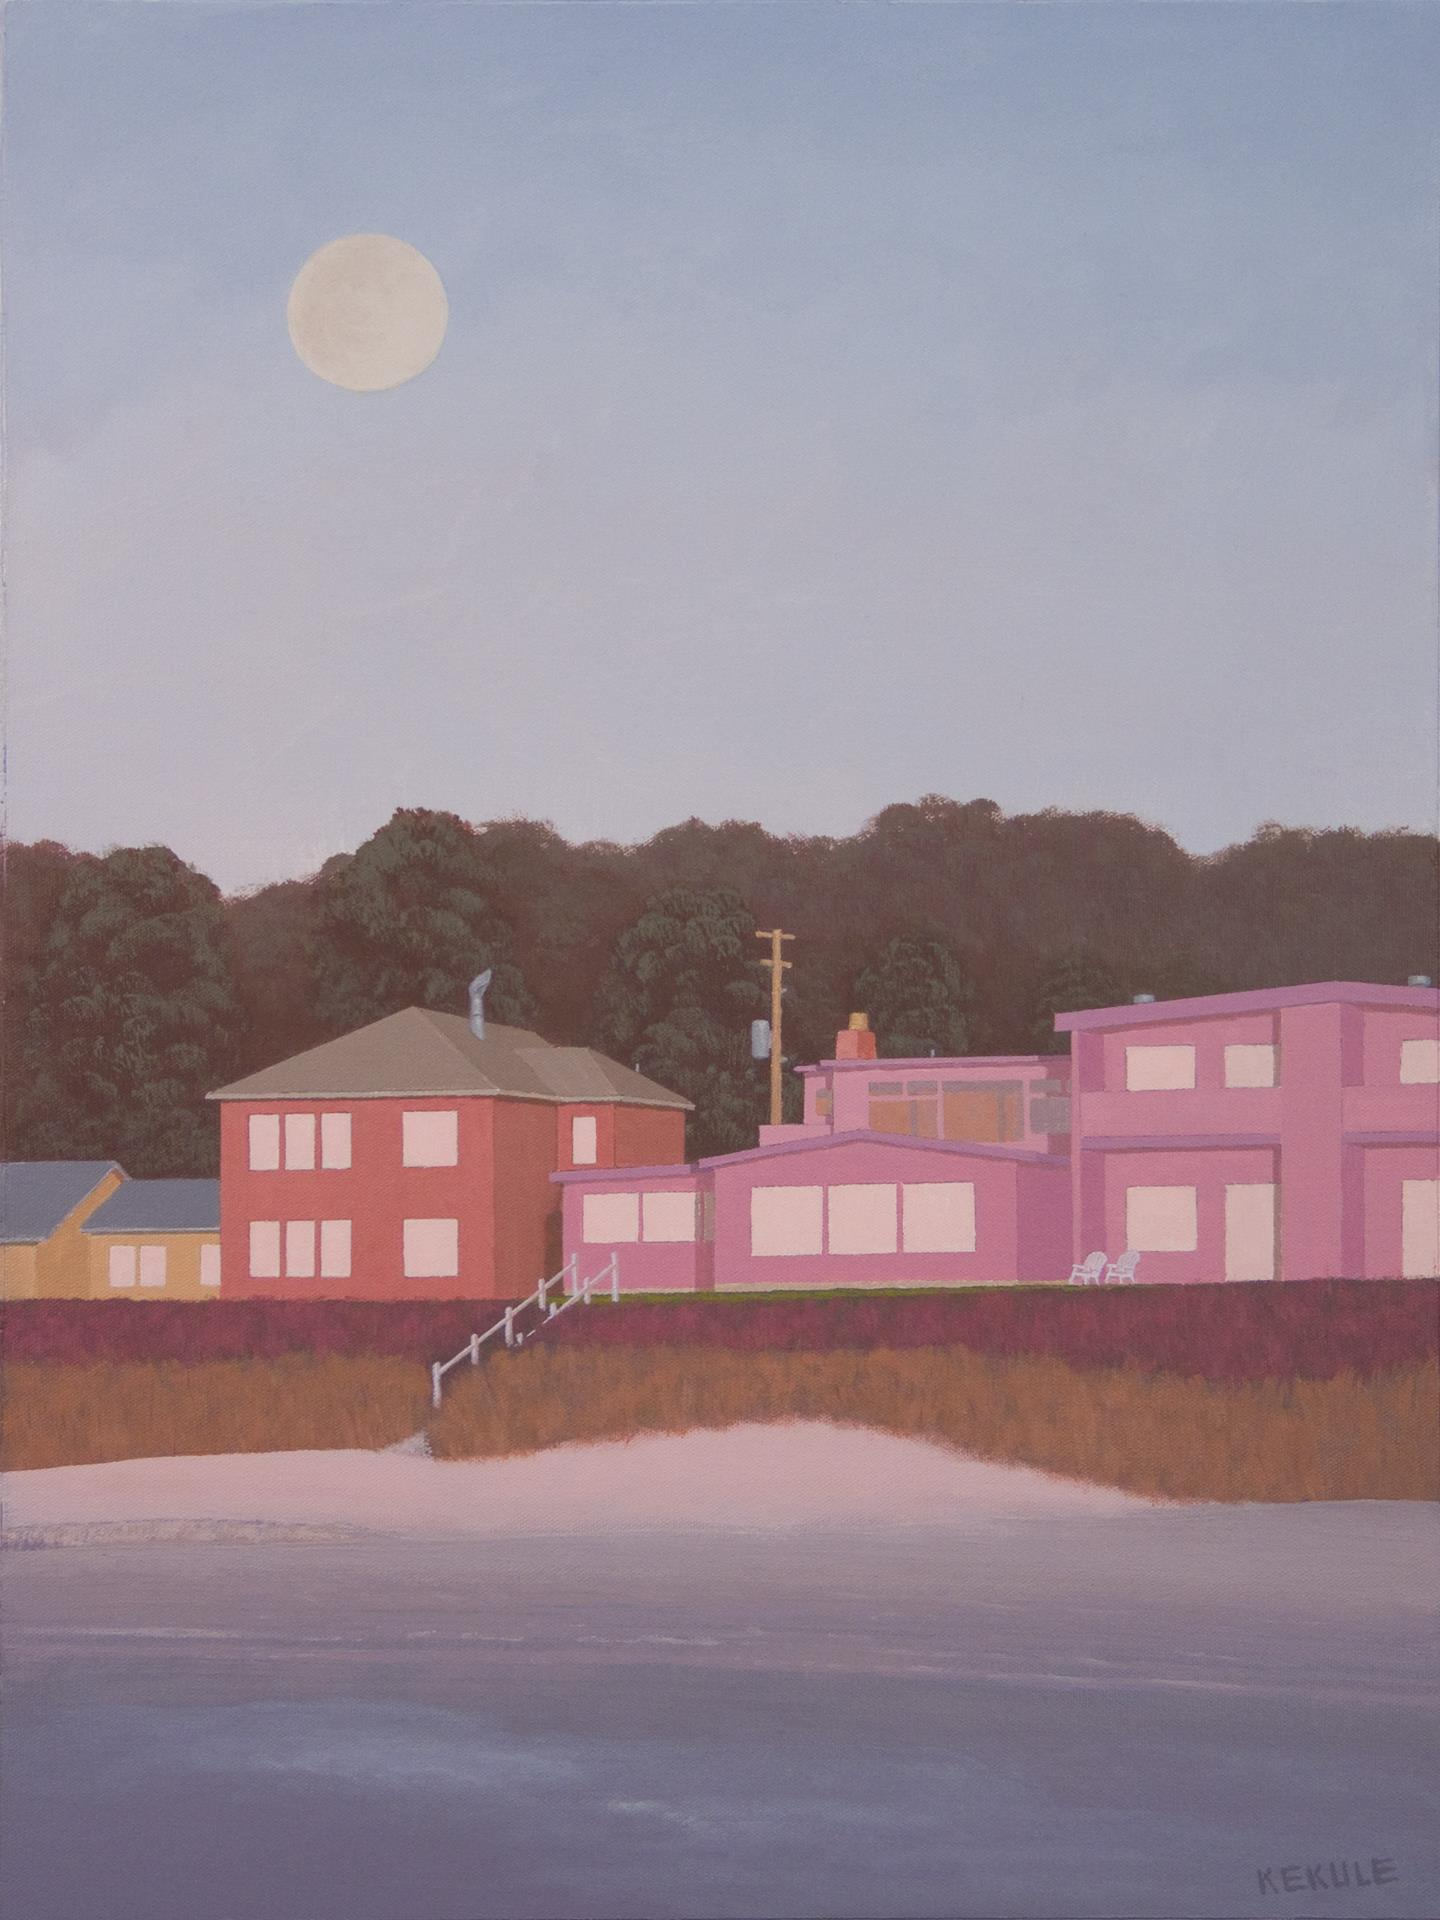 Stephen Kekule, Sunset at the Beach with a Full Moon Rising